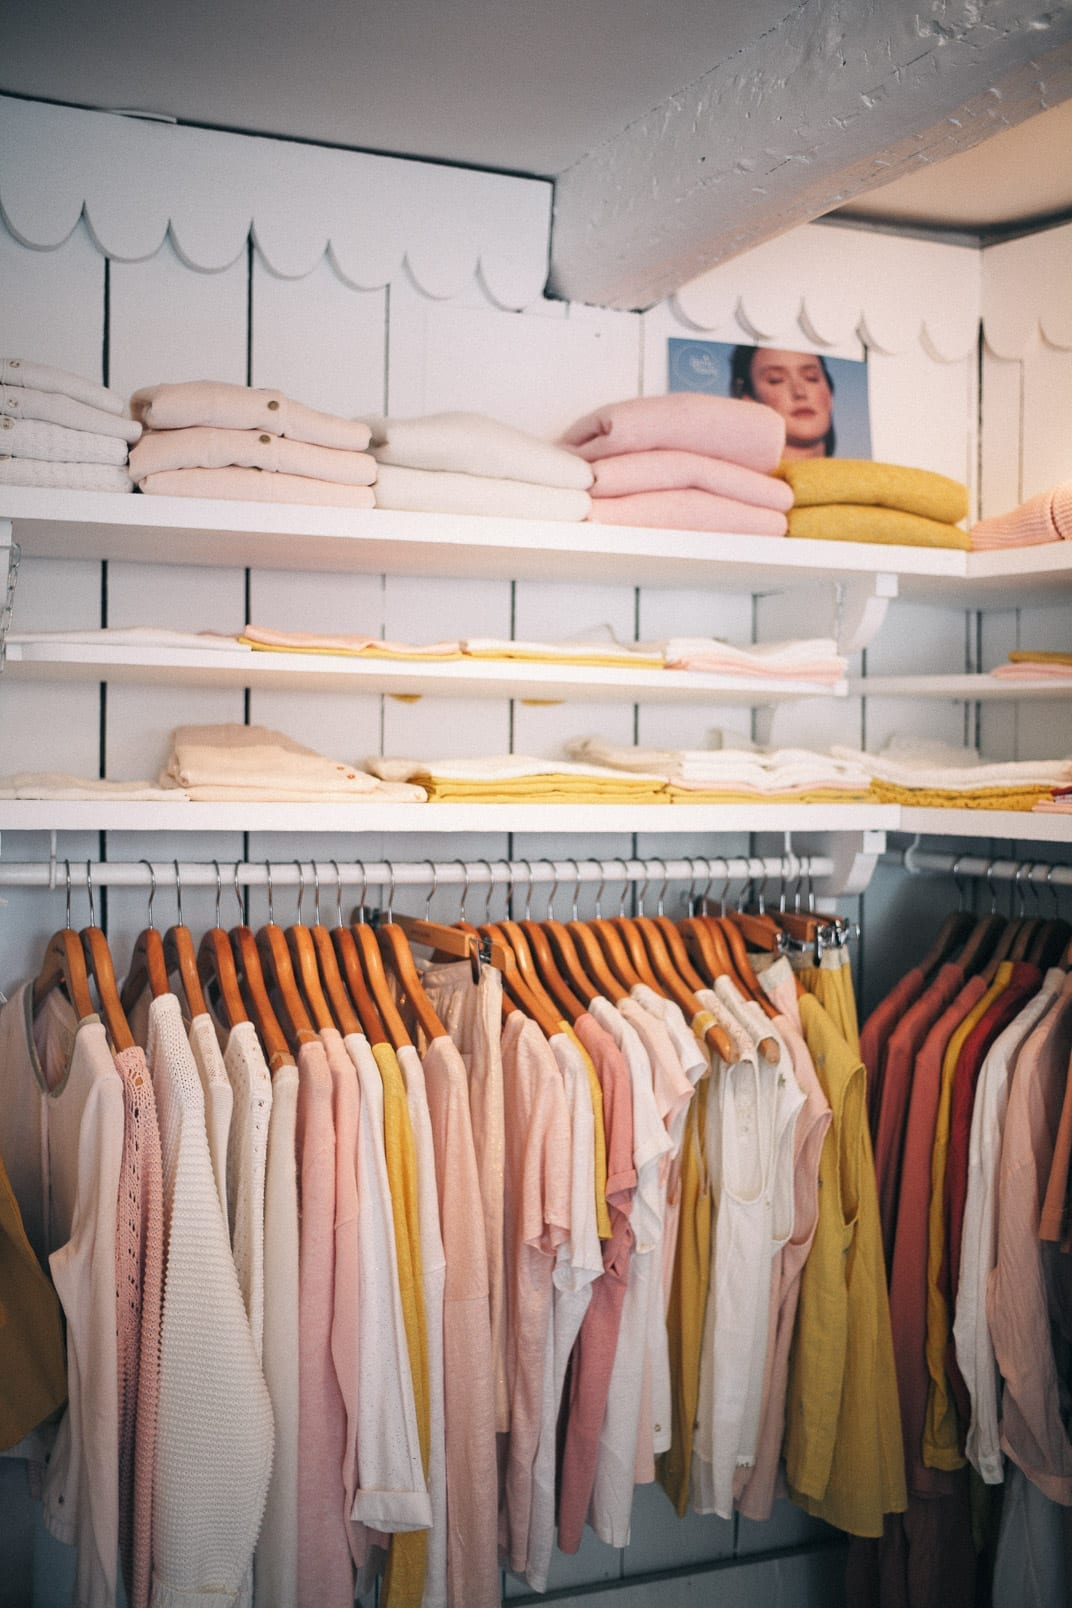 Lucy Cuneo: St Tropez guide - Cashmere Shopping!